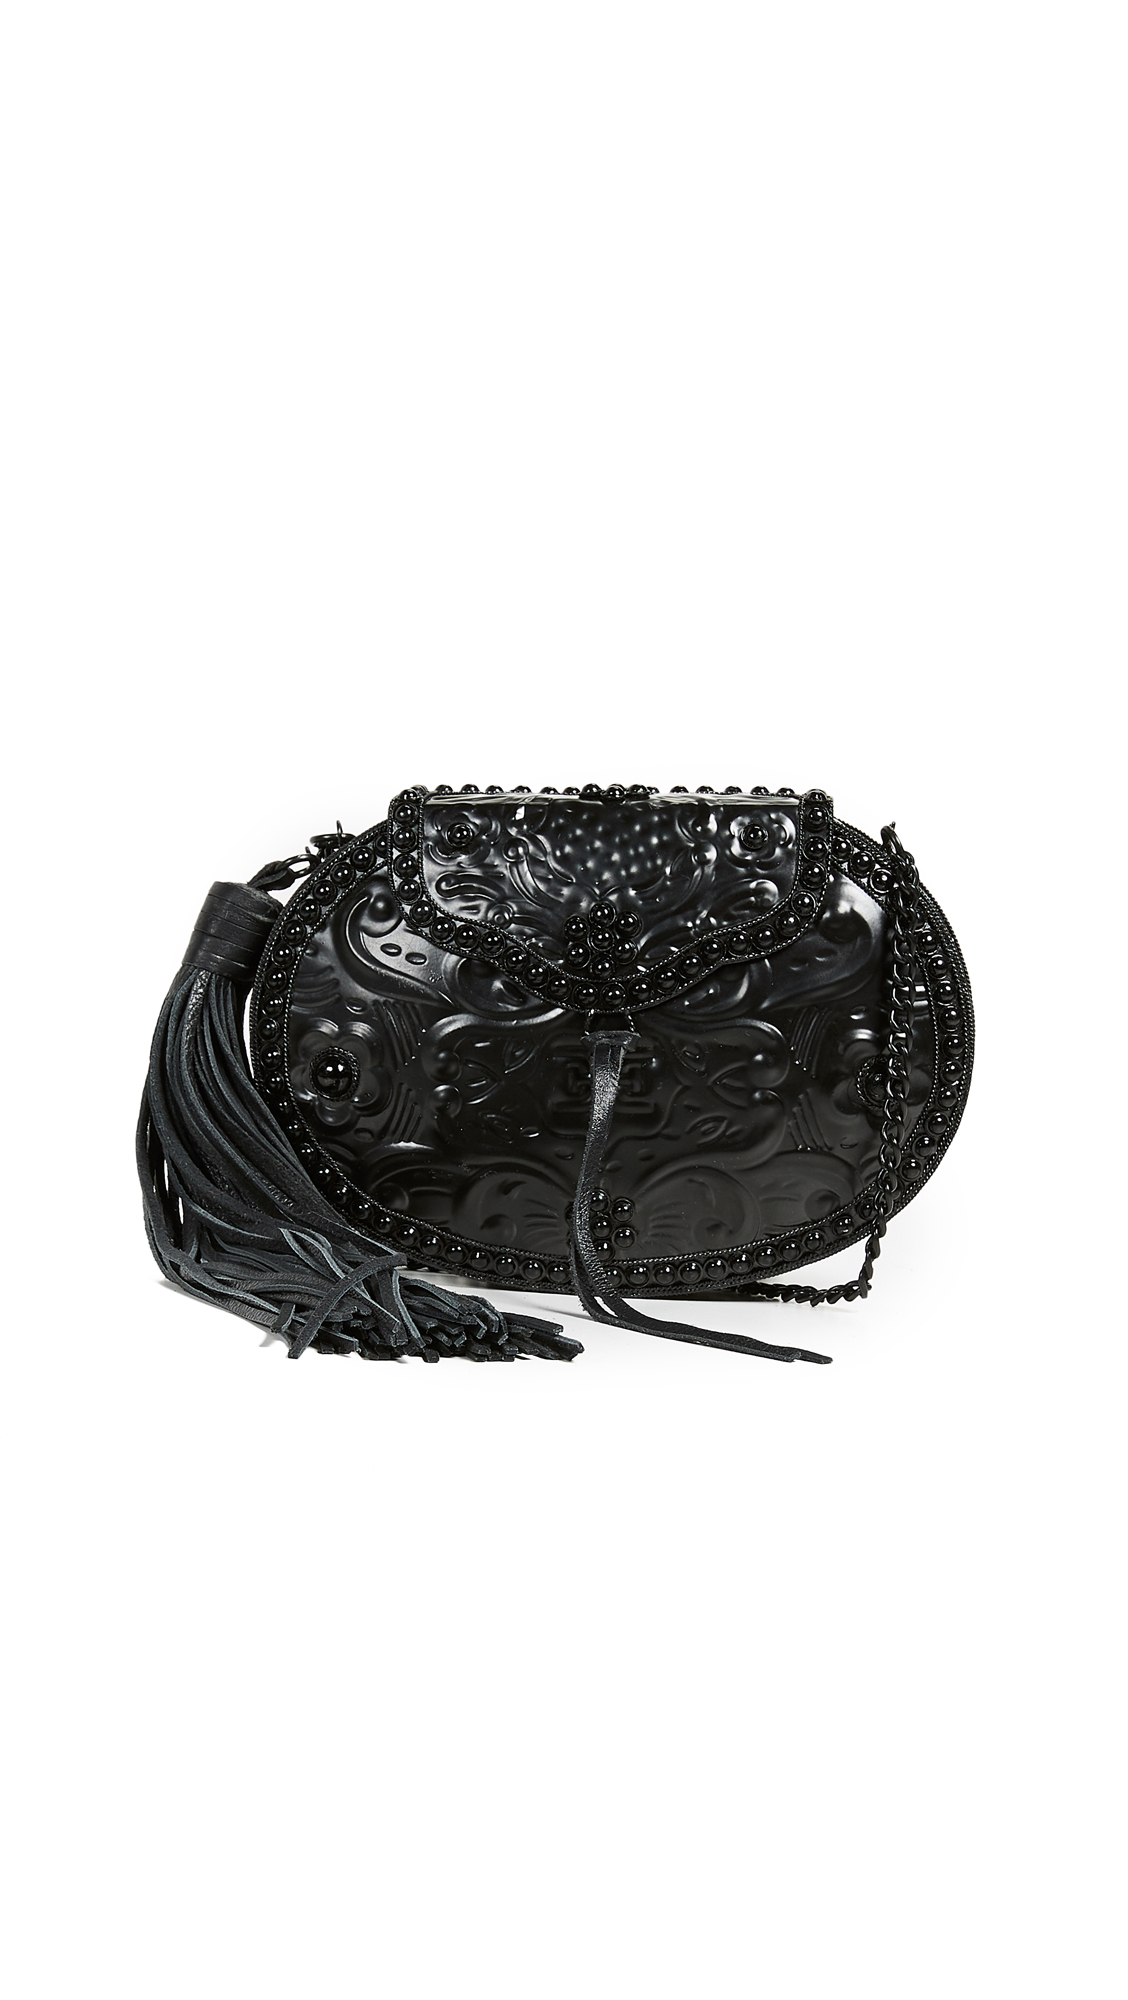 Sam Edelman Rosaleen Box Clutch In Matte Black